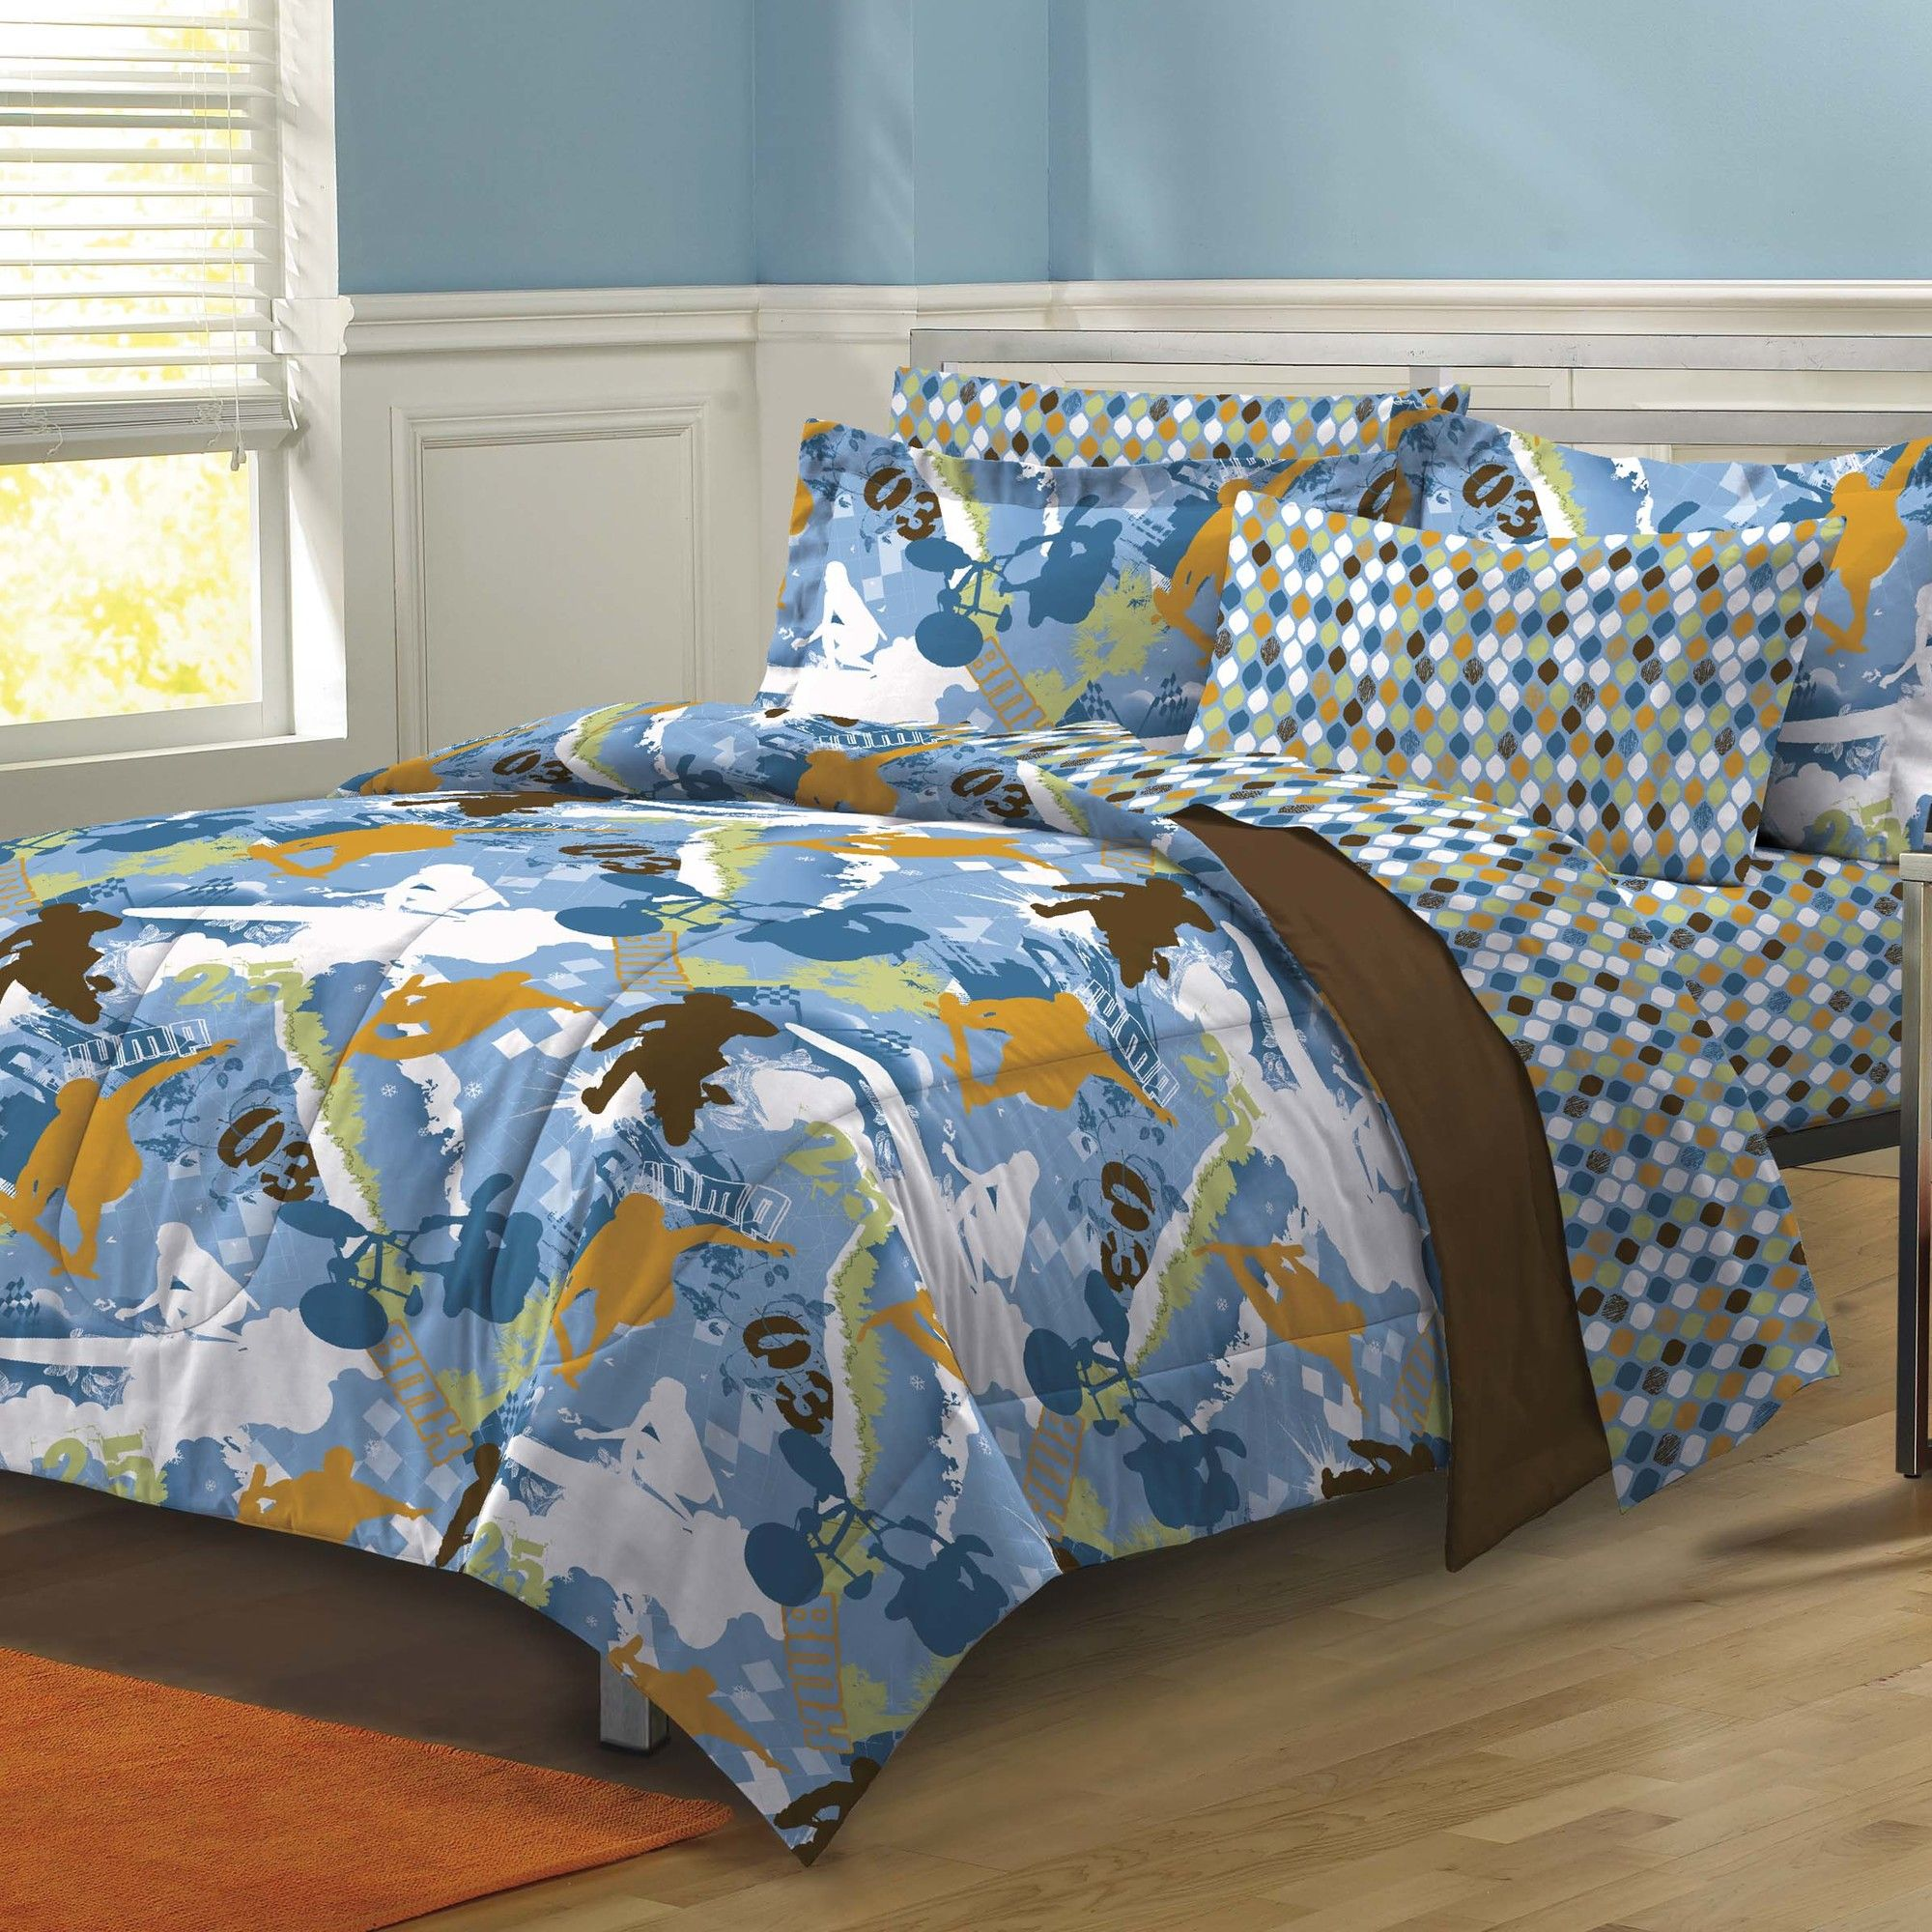 My Room Extreme Sports Bed Set & Reviews | Wayfair